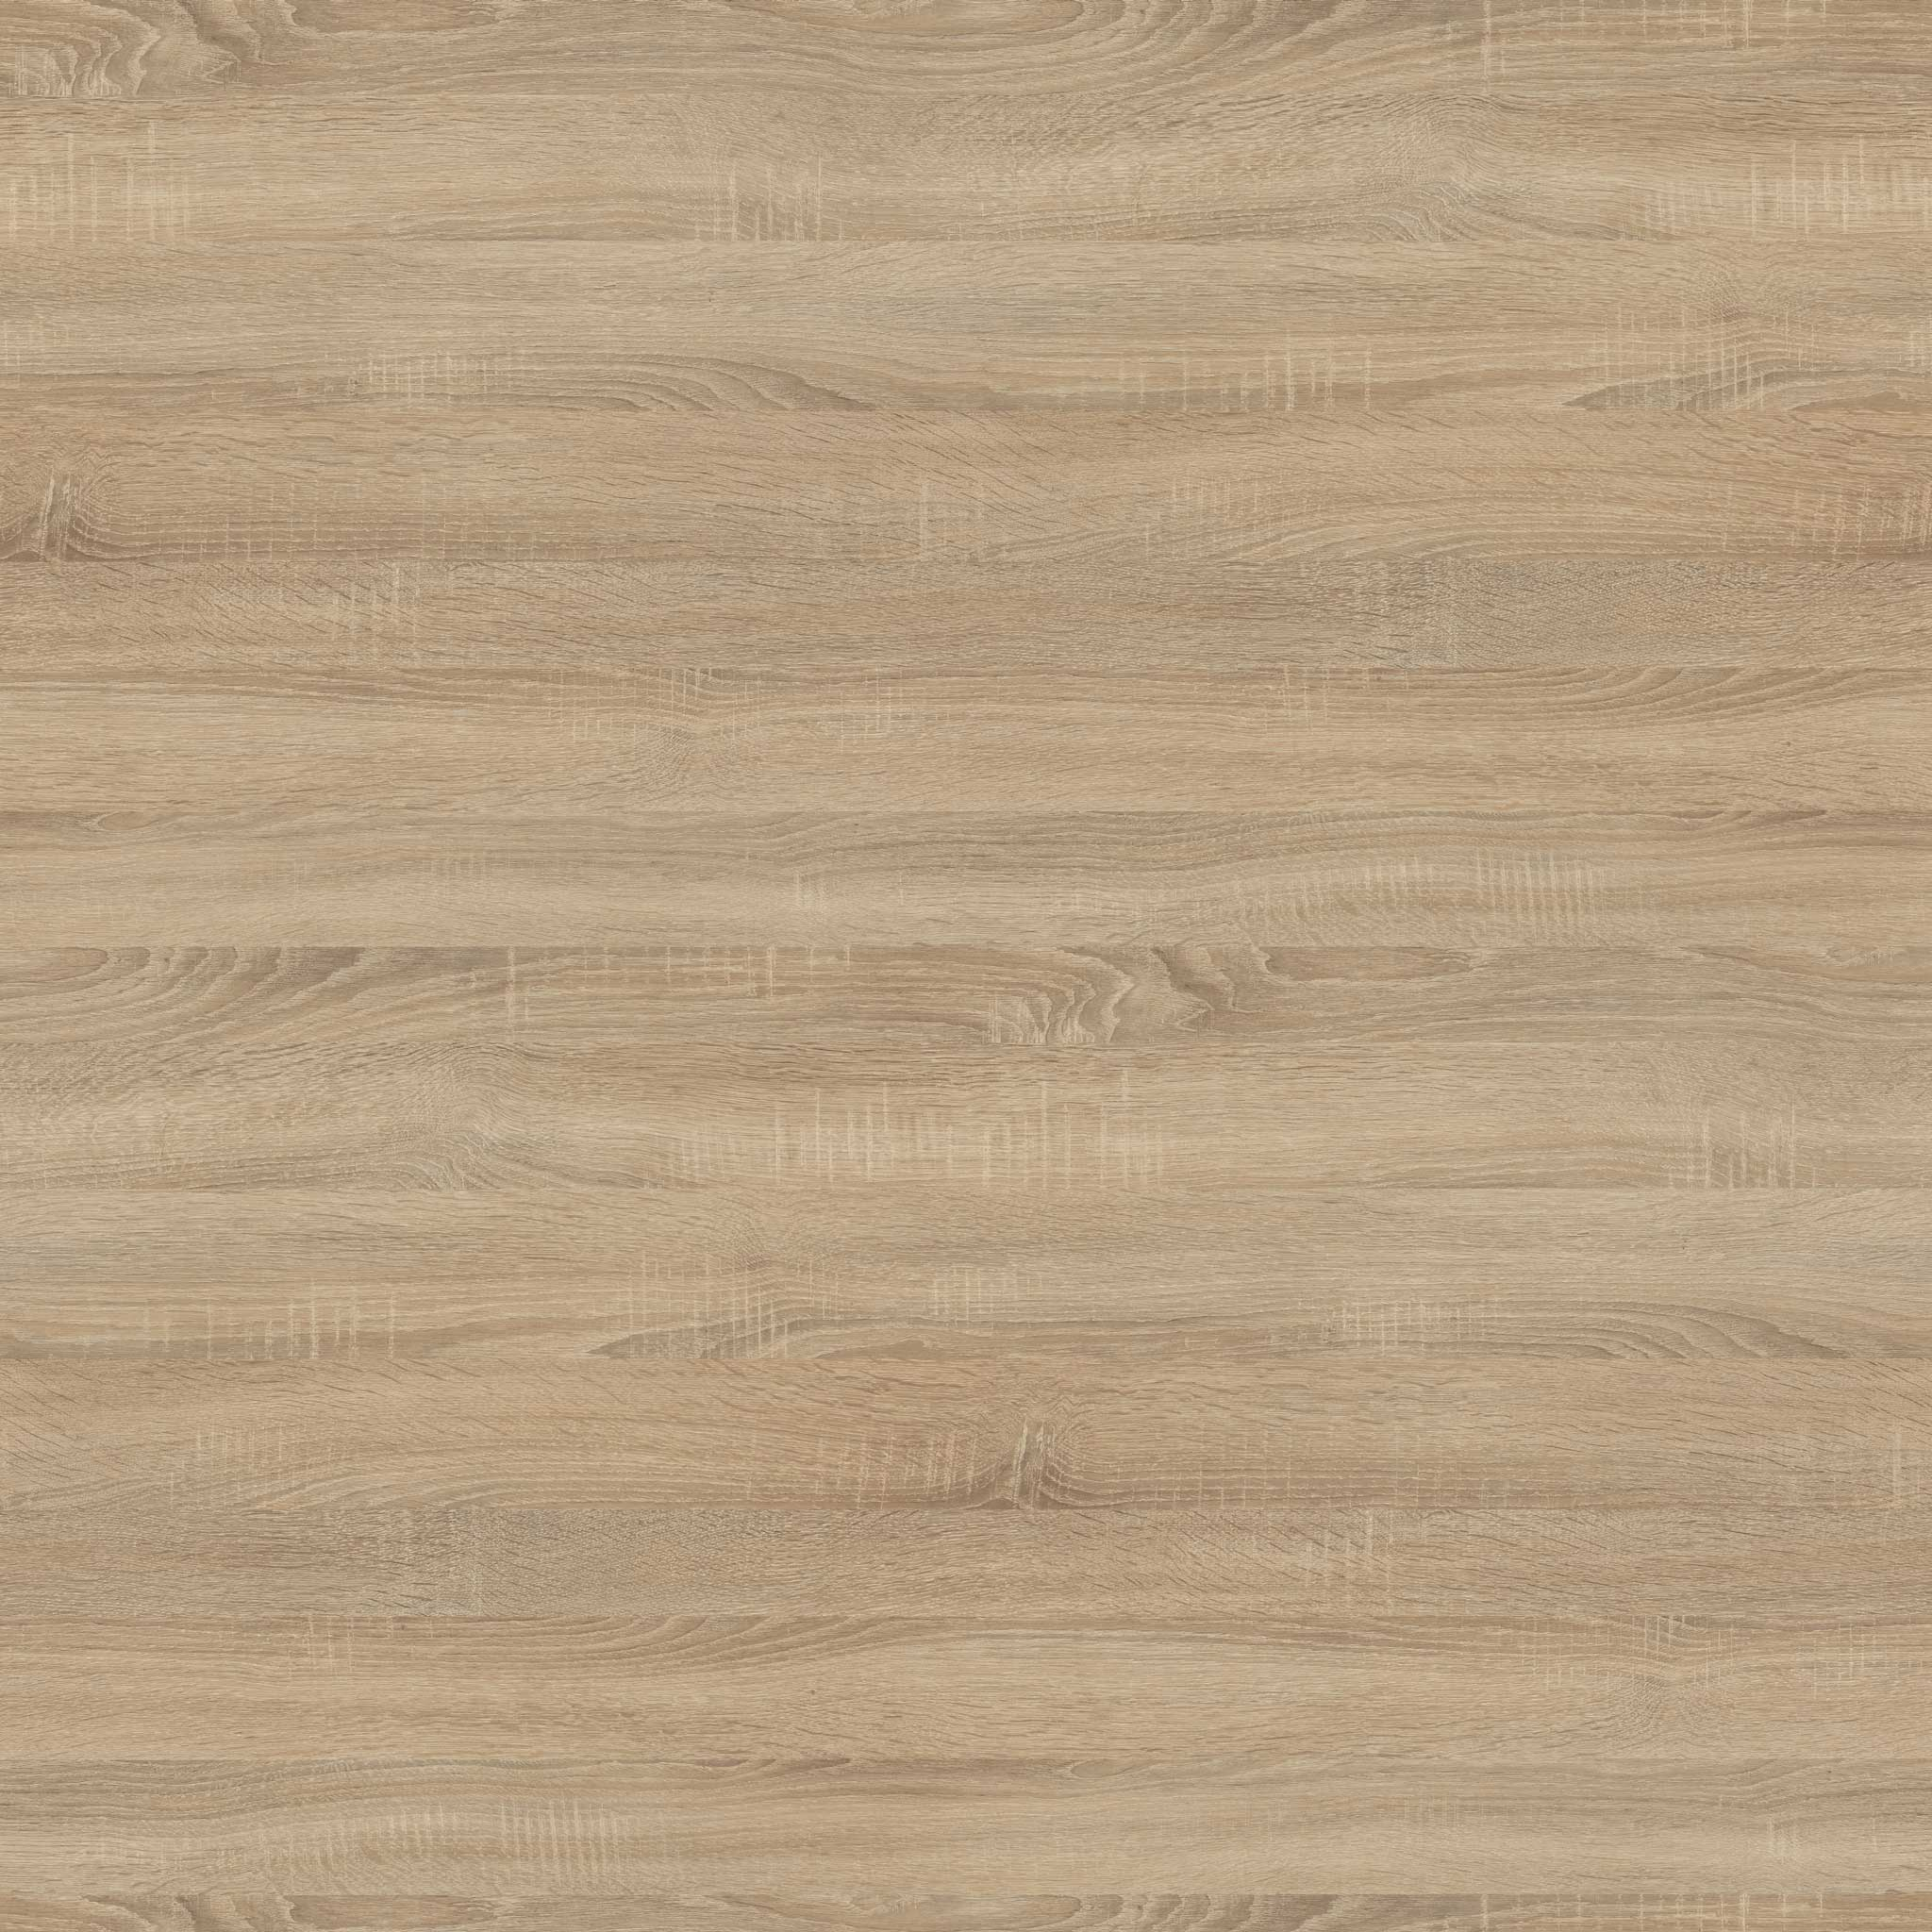 Egger Contemporary Grey Bardalino Oak kitchen worktop sample.